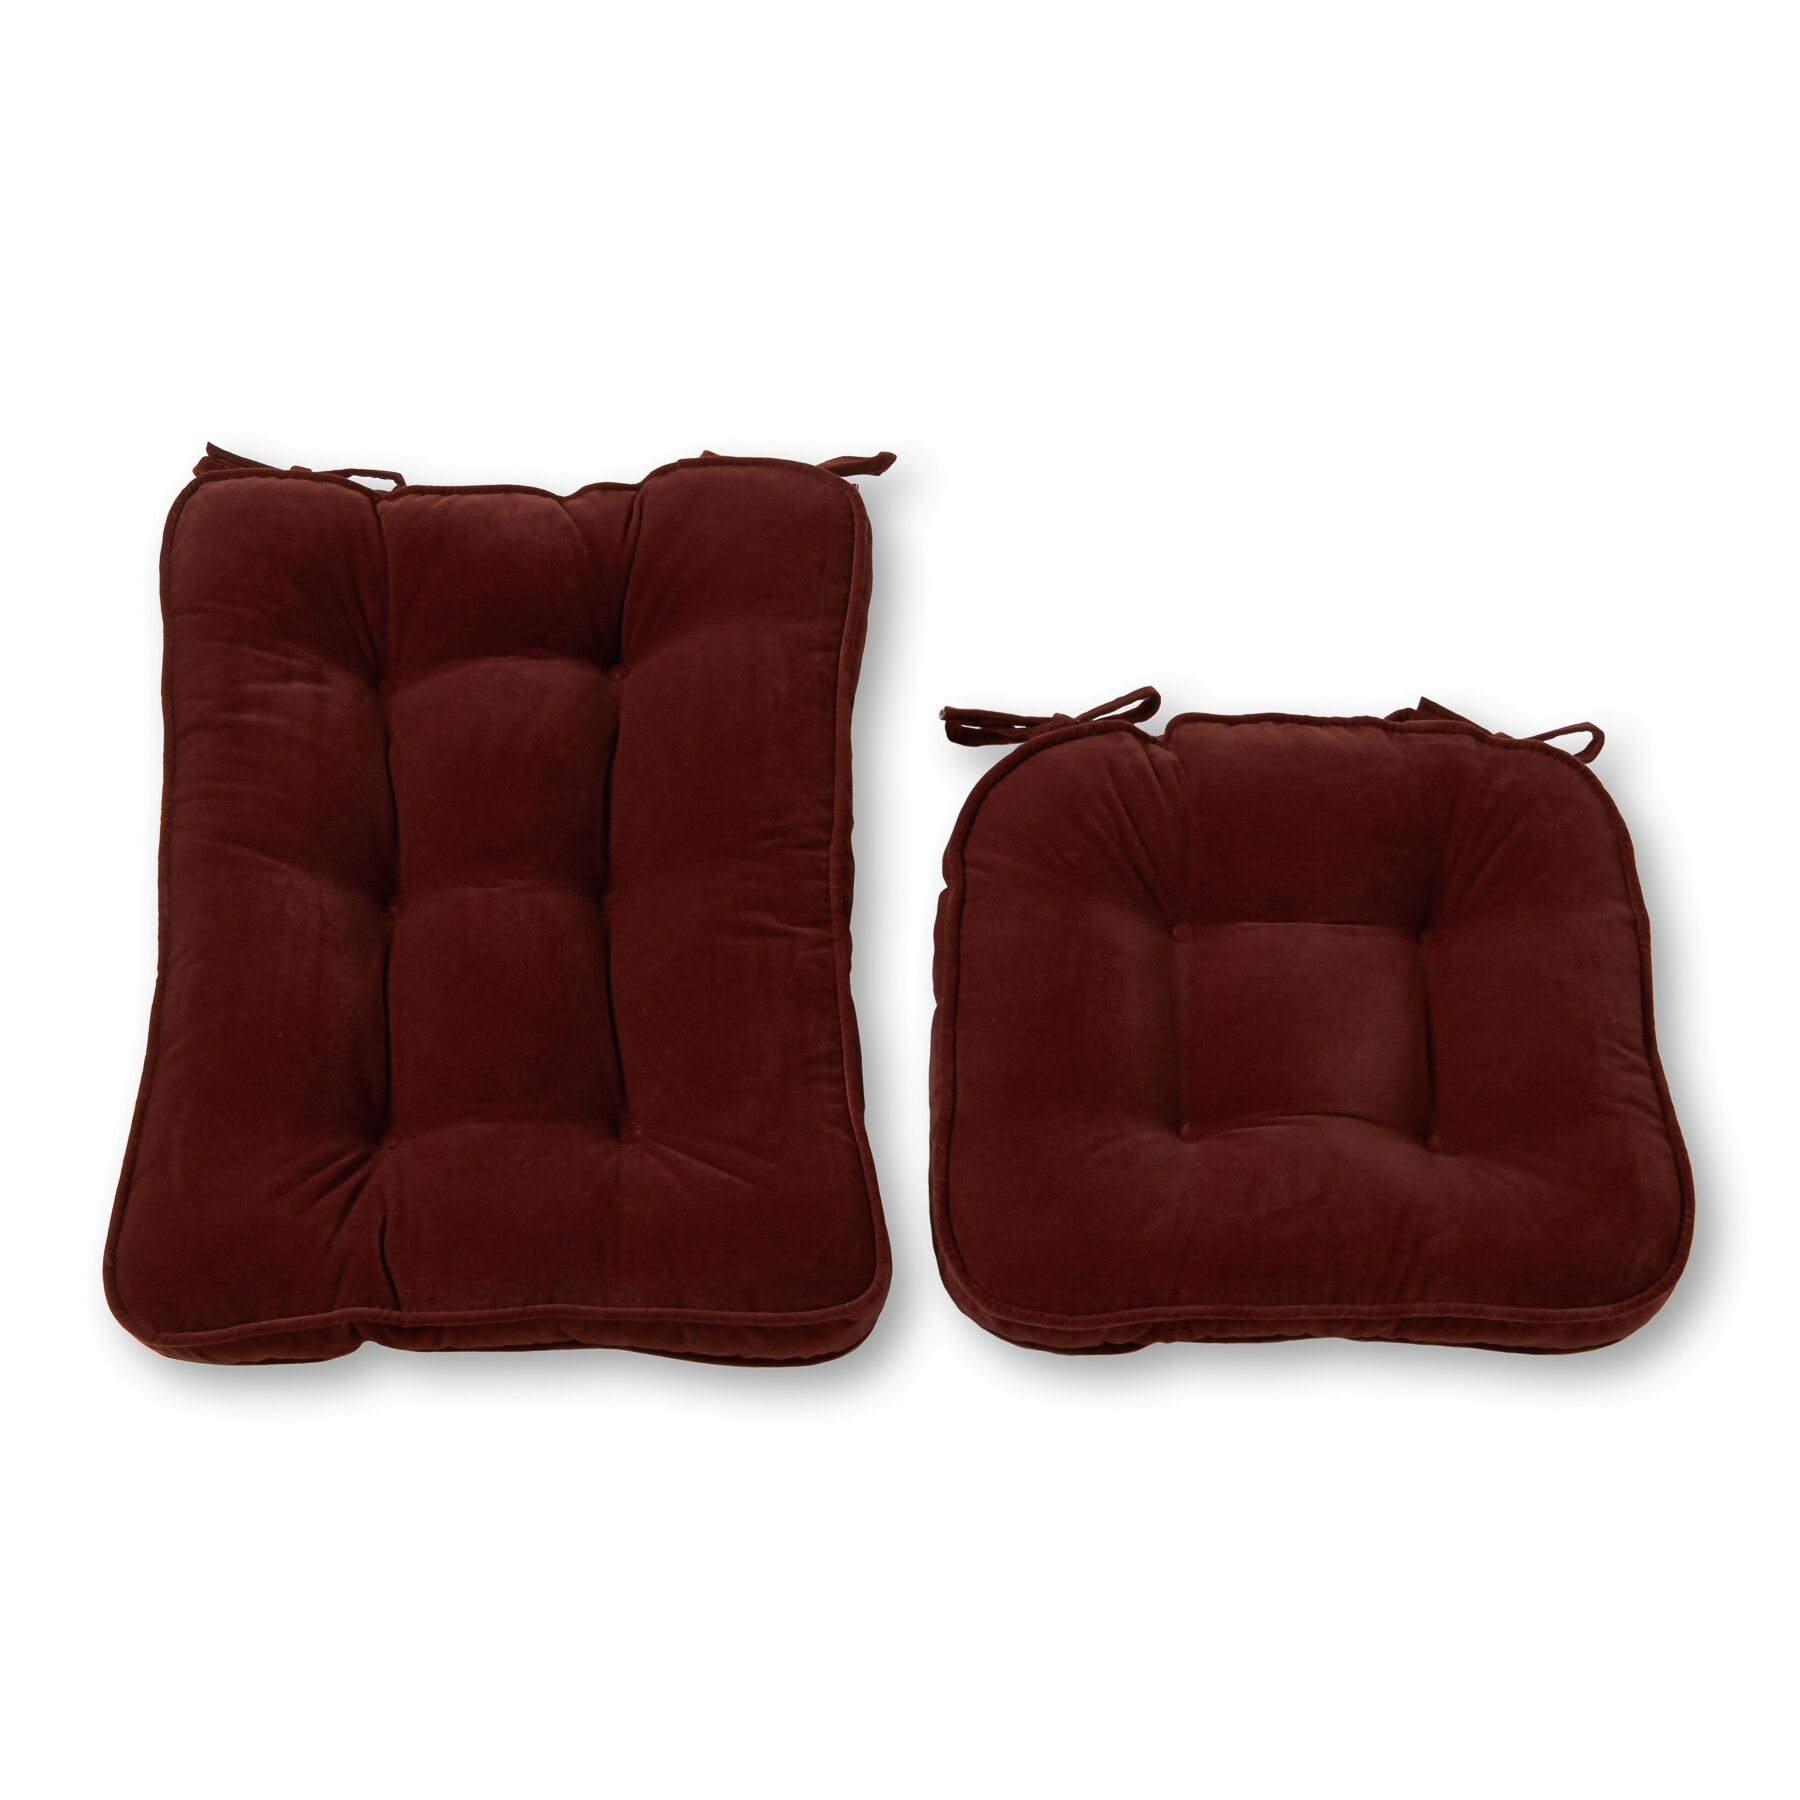 Rocking Chair Cushion Back Cushion Size: 28